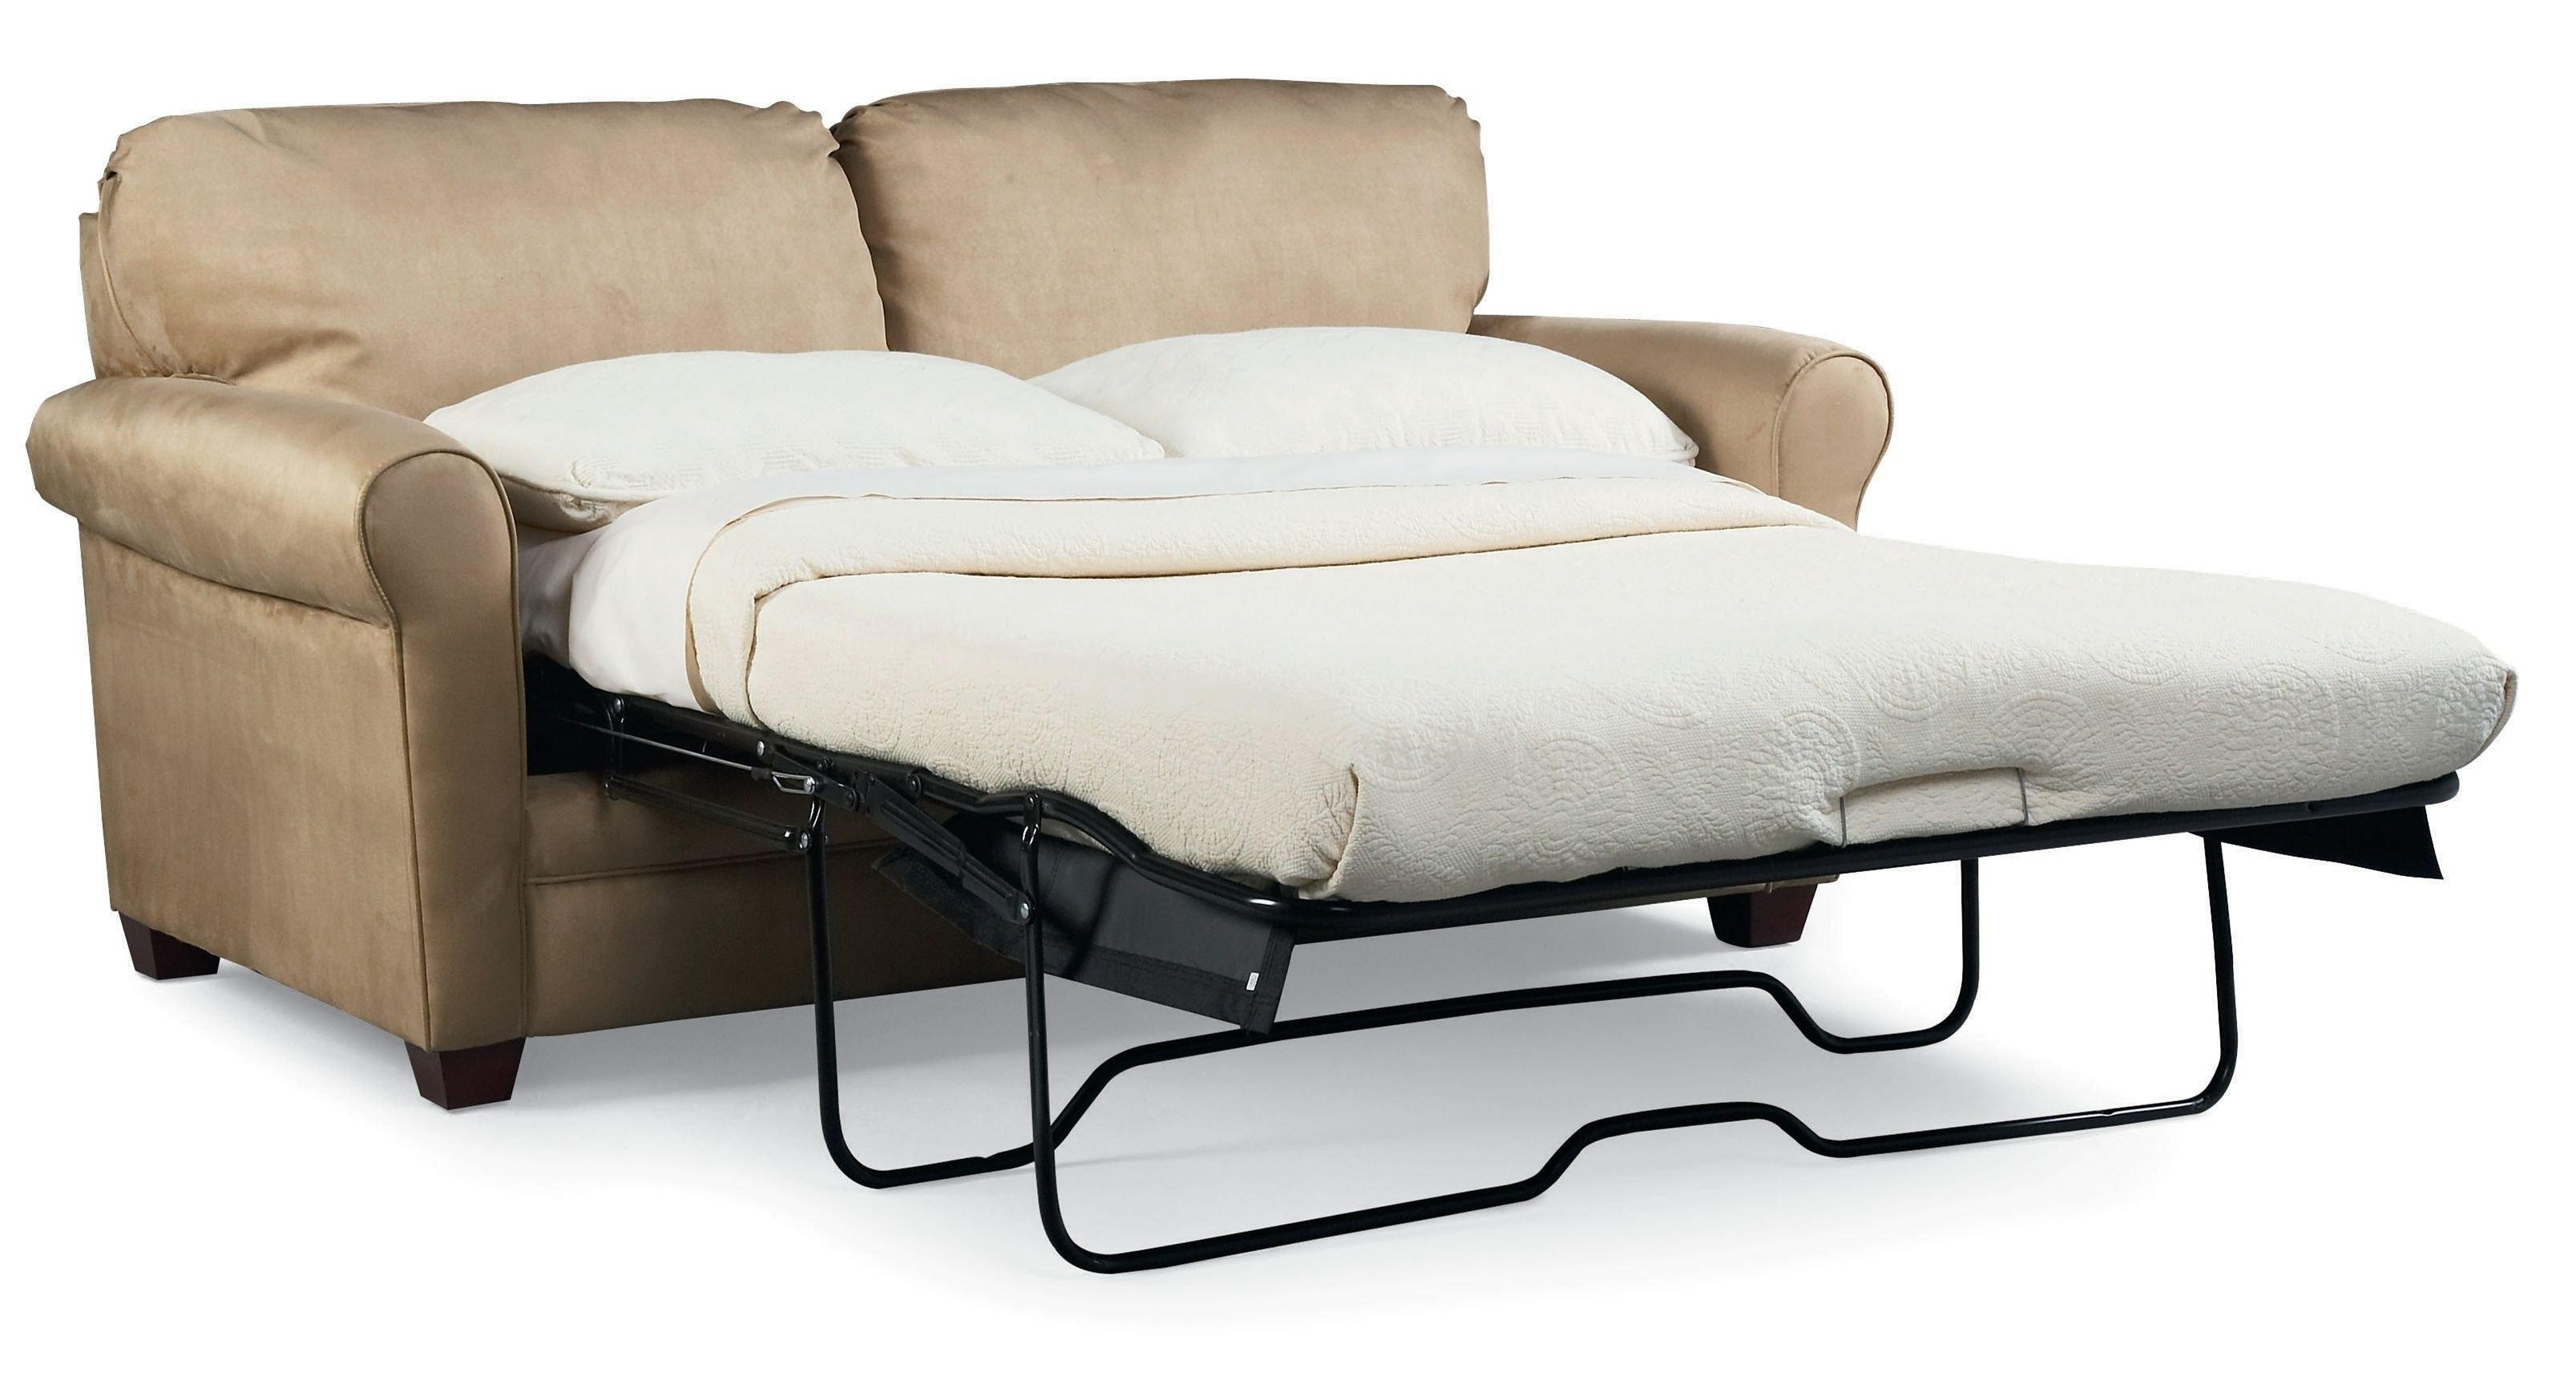 Queen Size Sofa Bed | Tehranmix Decoration in Sofa Sleeper Sheets